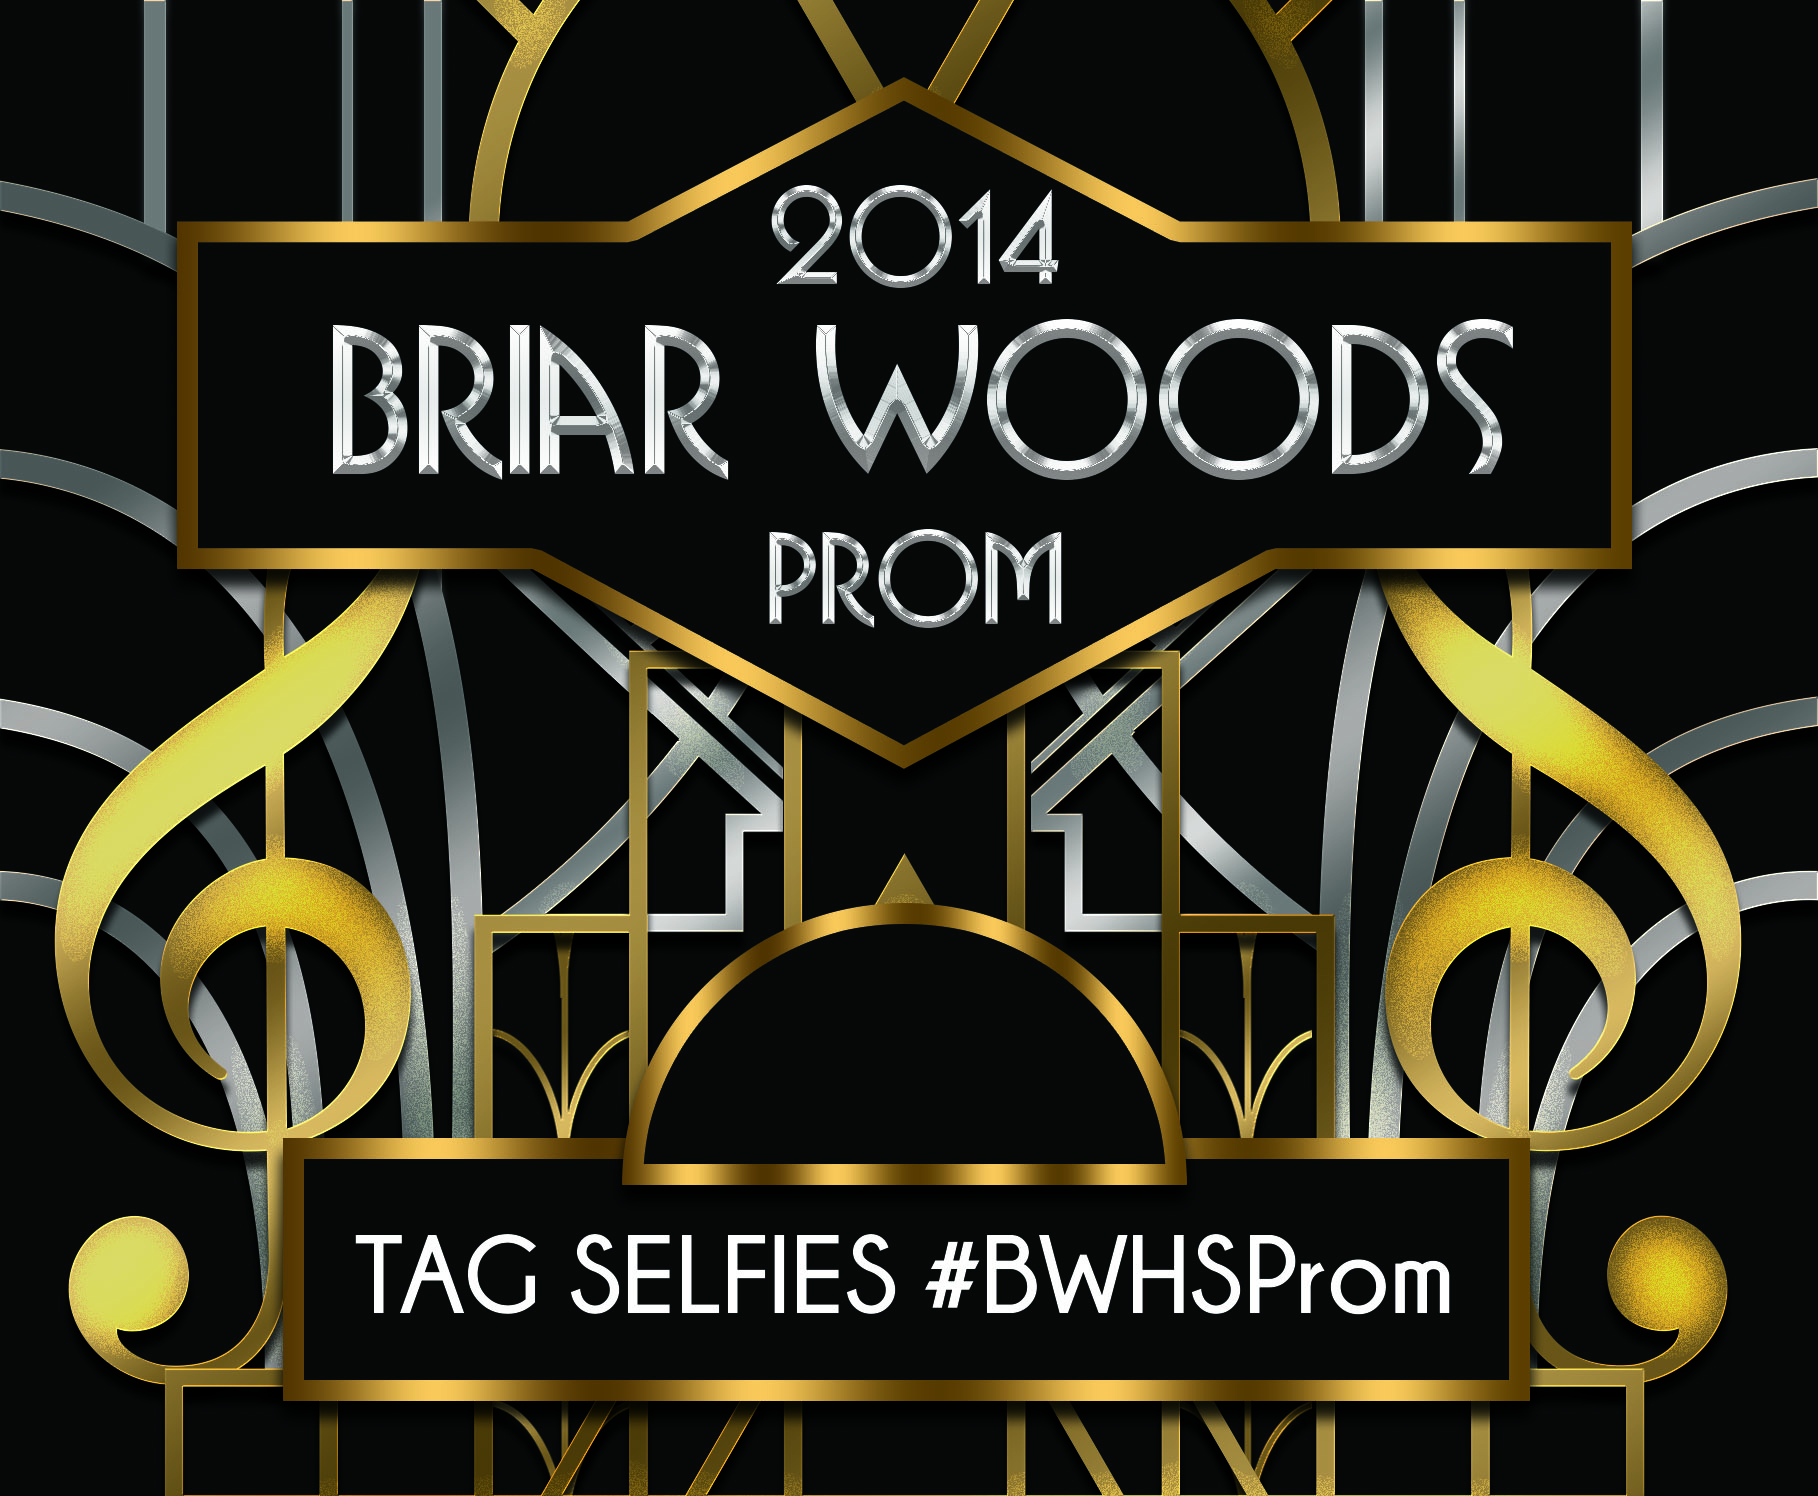 BriarWoodPromImage